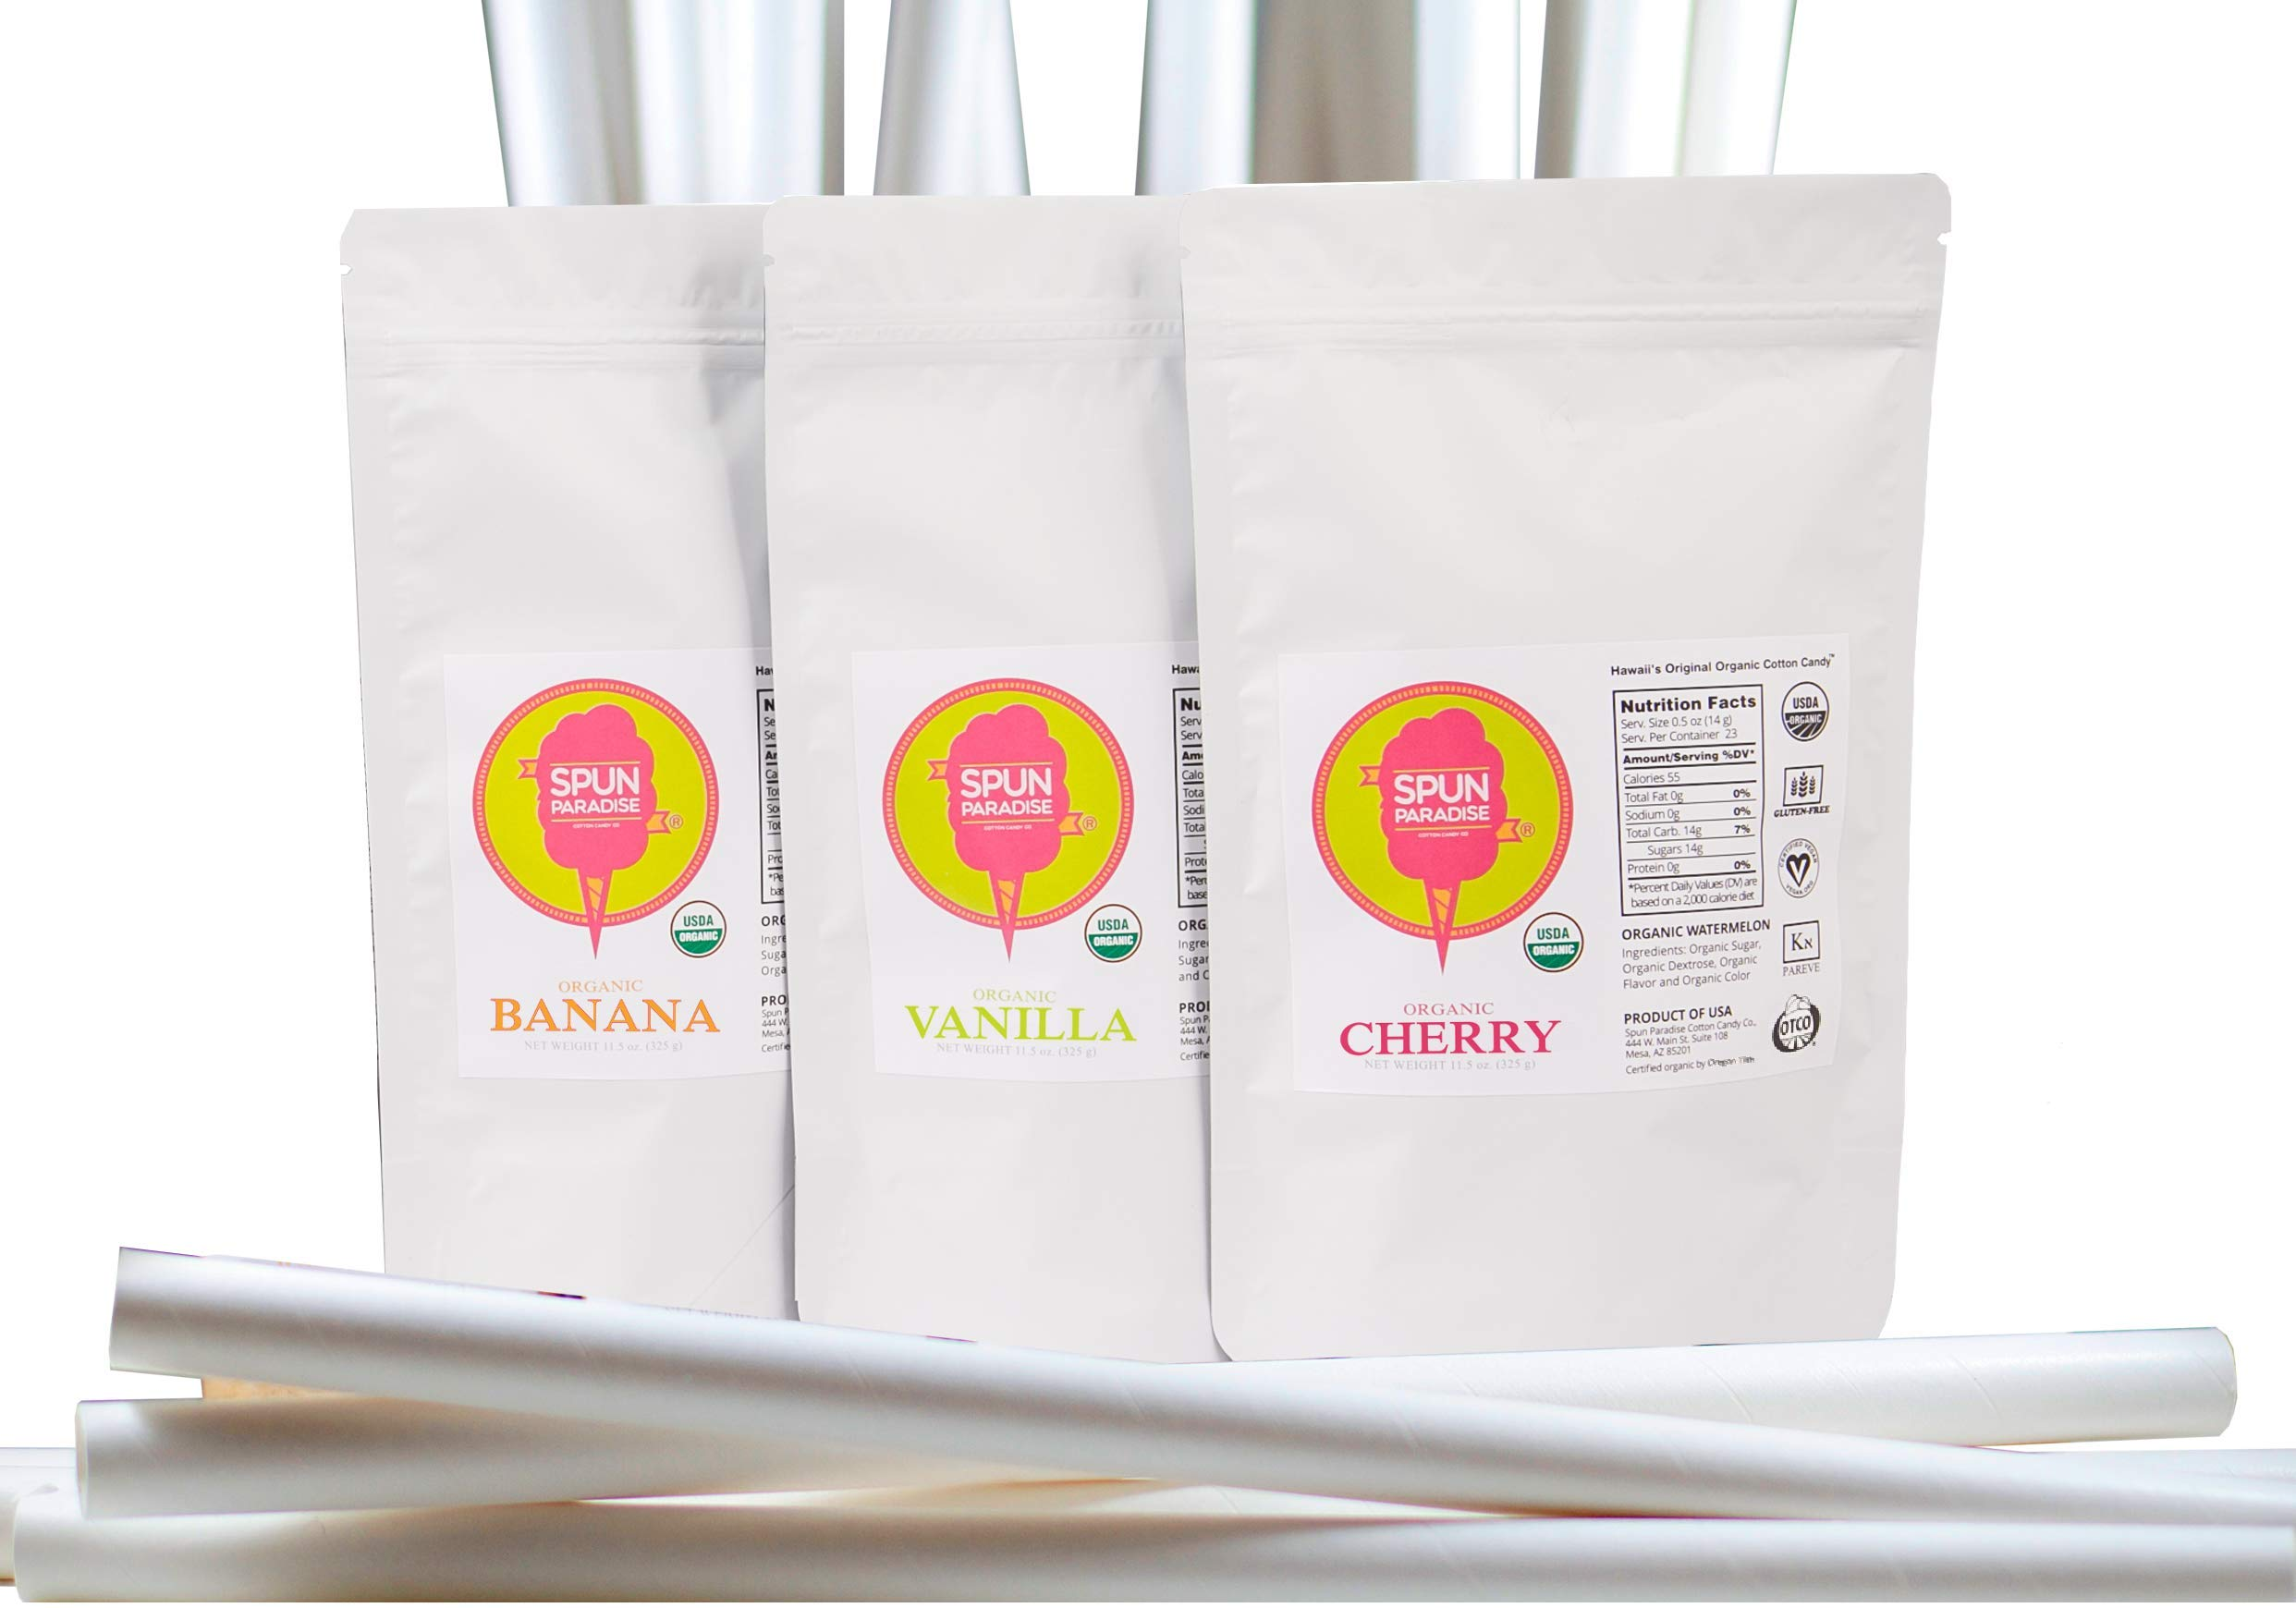 Cotton Candy Sugar Floss, Spun Paradise Certified USDA Organic, Three Delicious Natural & Dye Free Flavors, 12oz Each Cherry, Banana & Vanilla, 69 Servings Total, Includes 23 Cotton Candy Paper Cones,